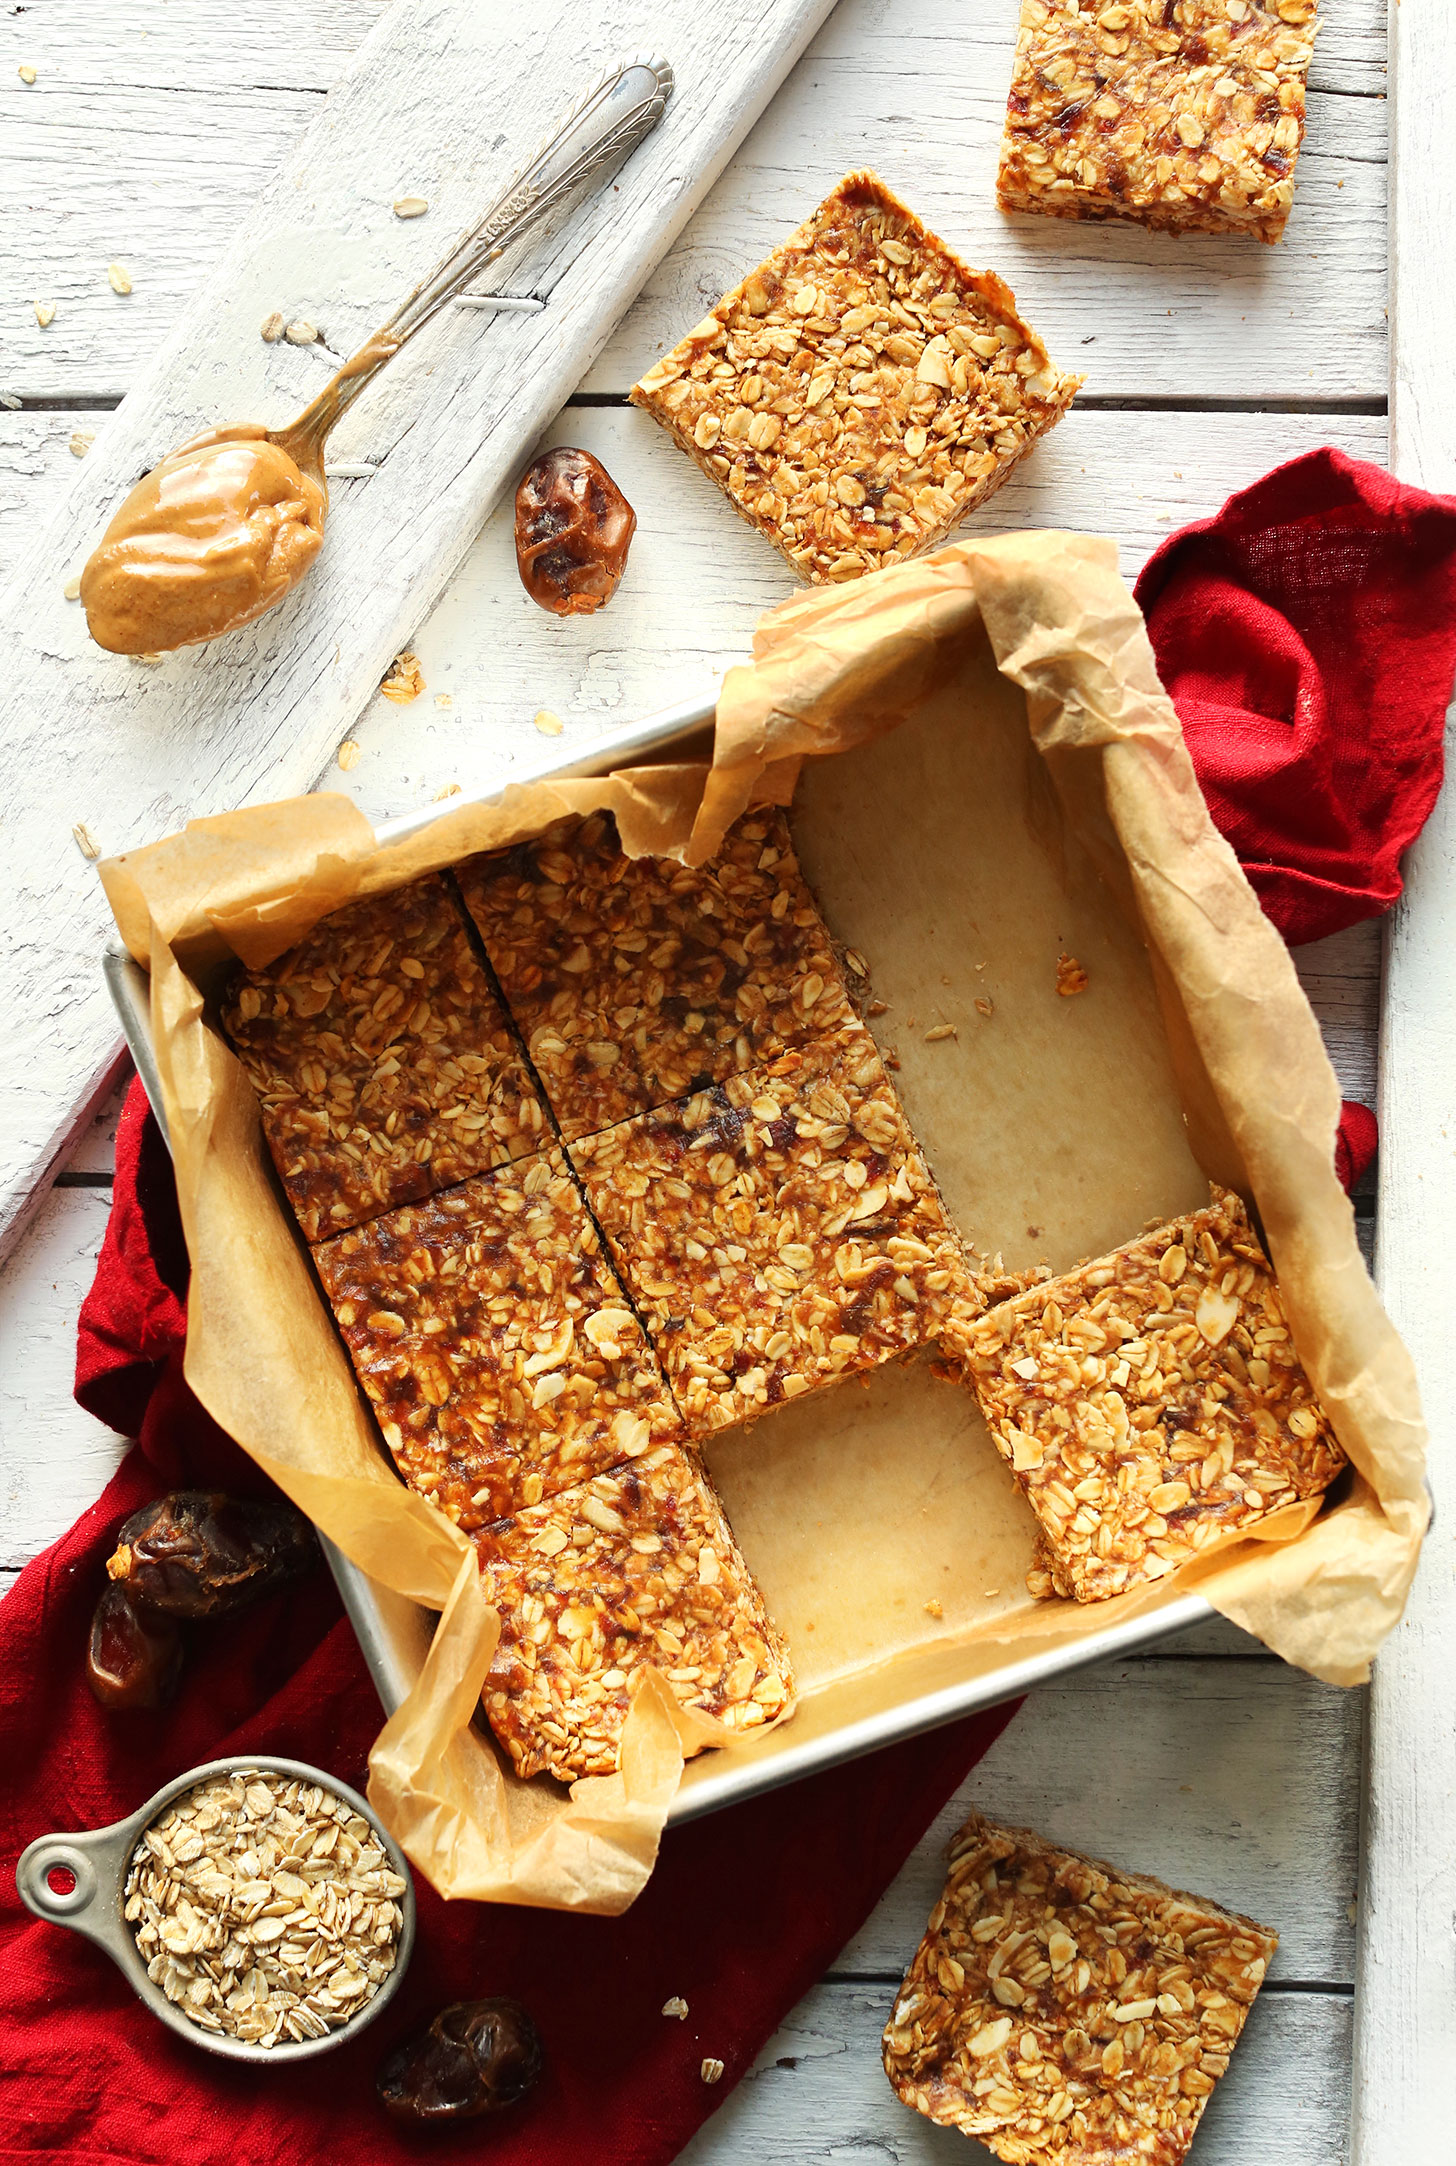 Parchment-lined baking pan with our gluten-free vegan Peanut Butter Granola Bars